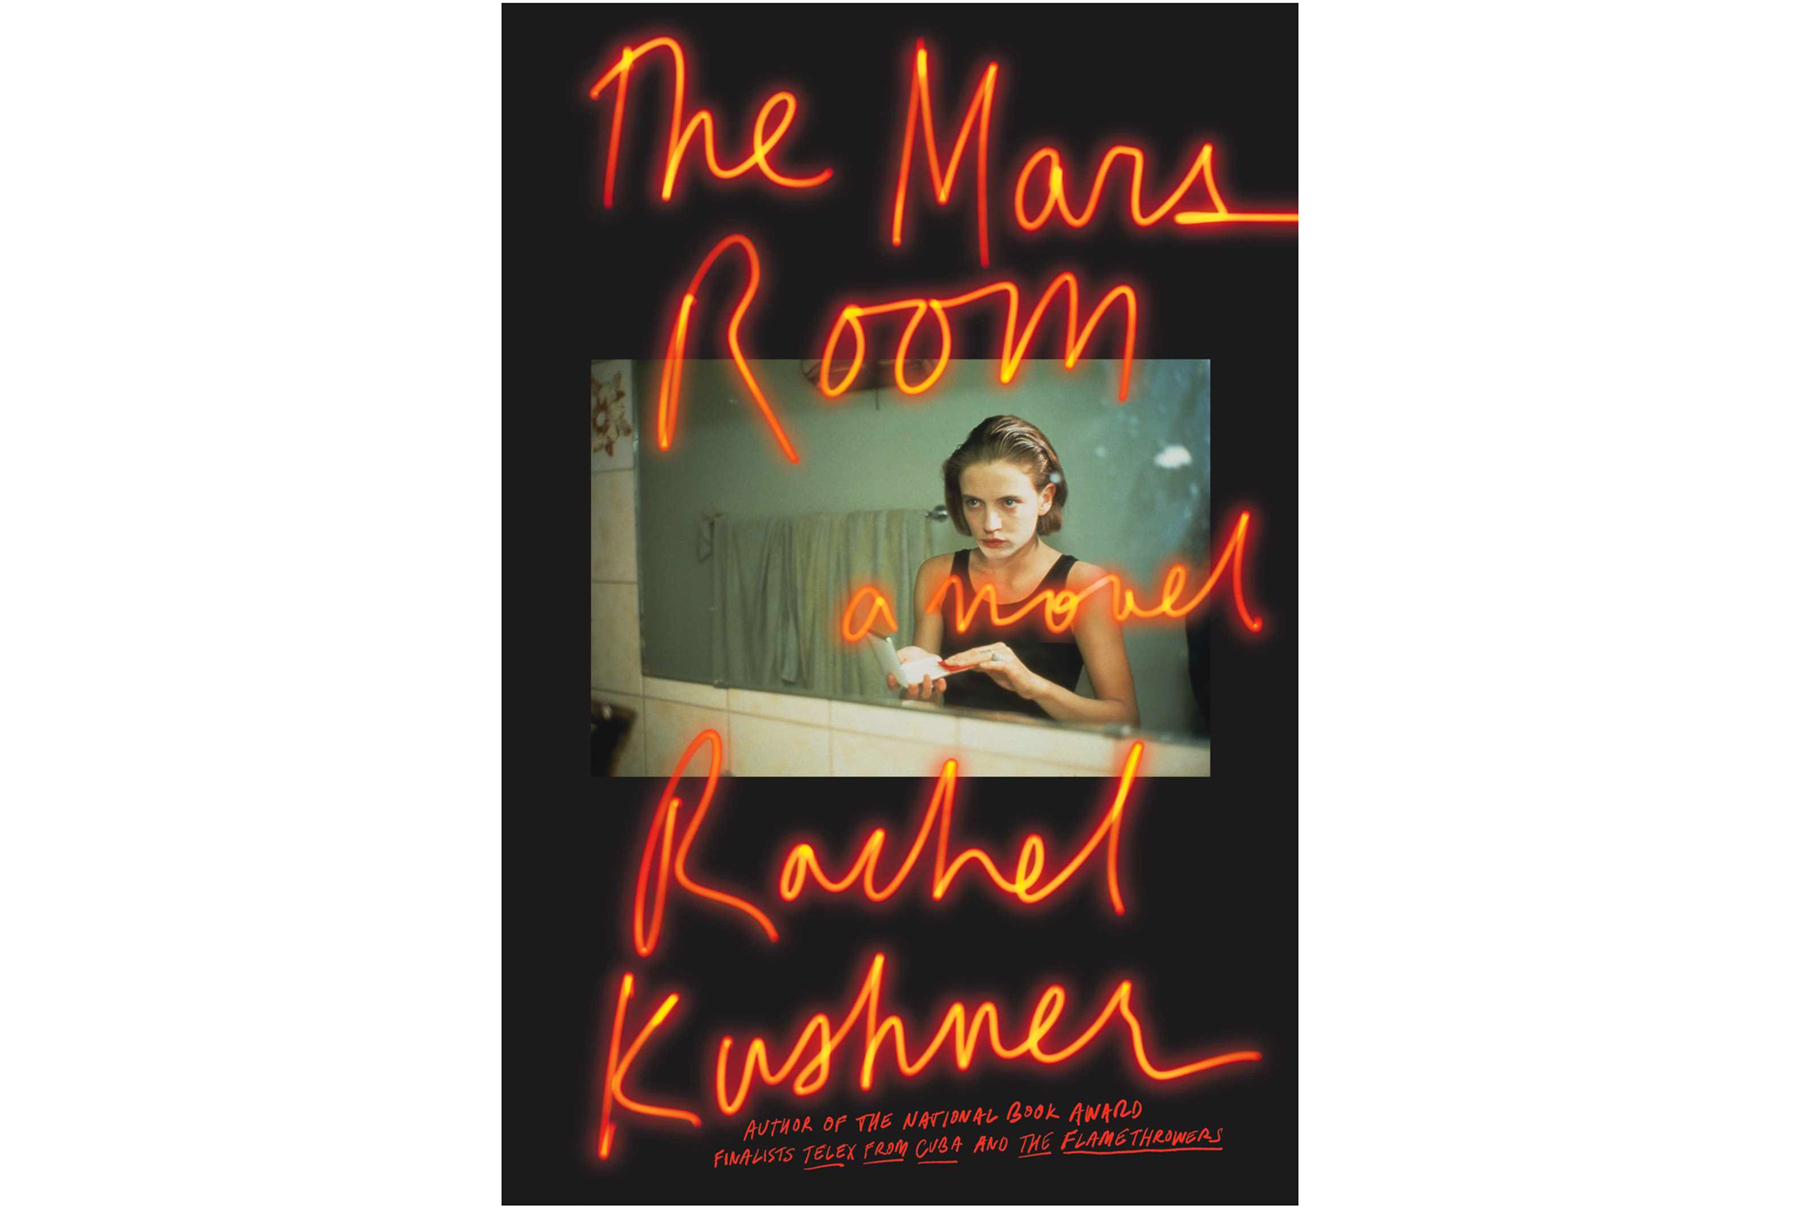 Rachel Kushner, author of The Mars Room